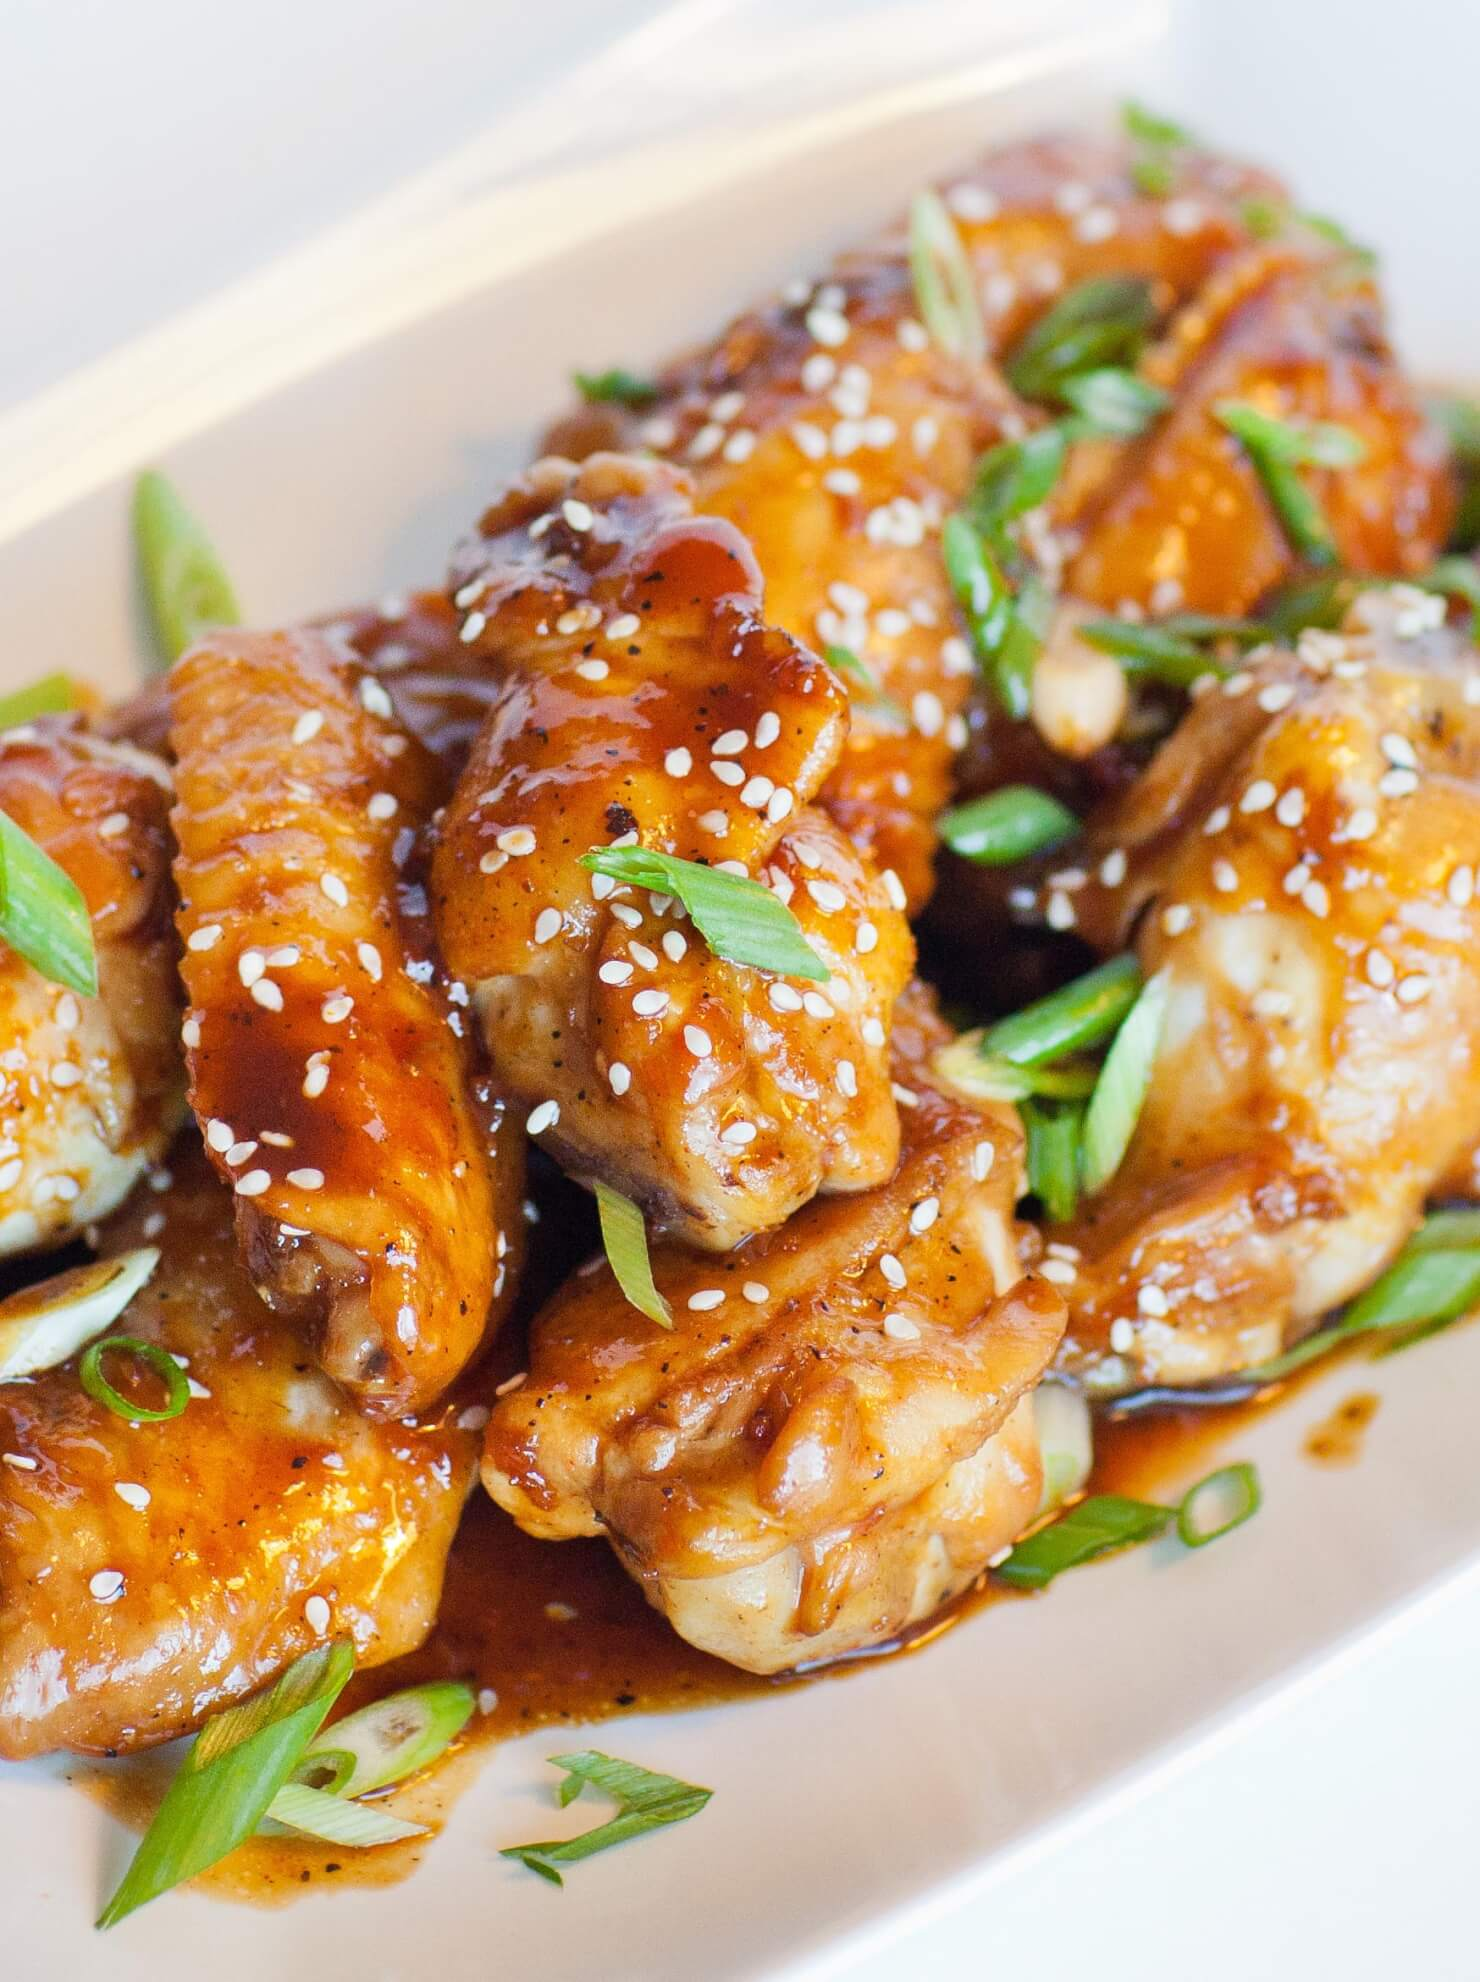 teriyaki chicken party wings with sesame seeds